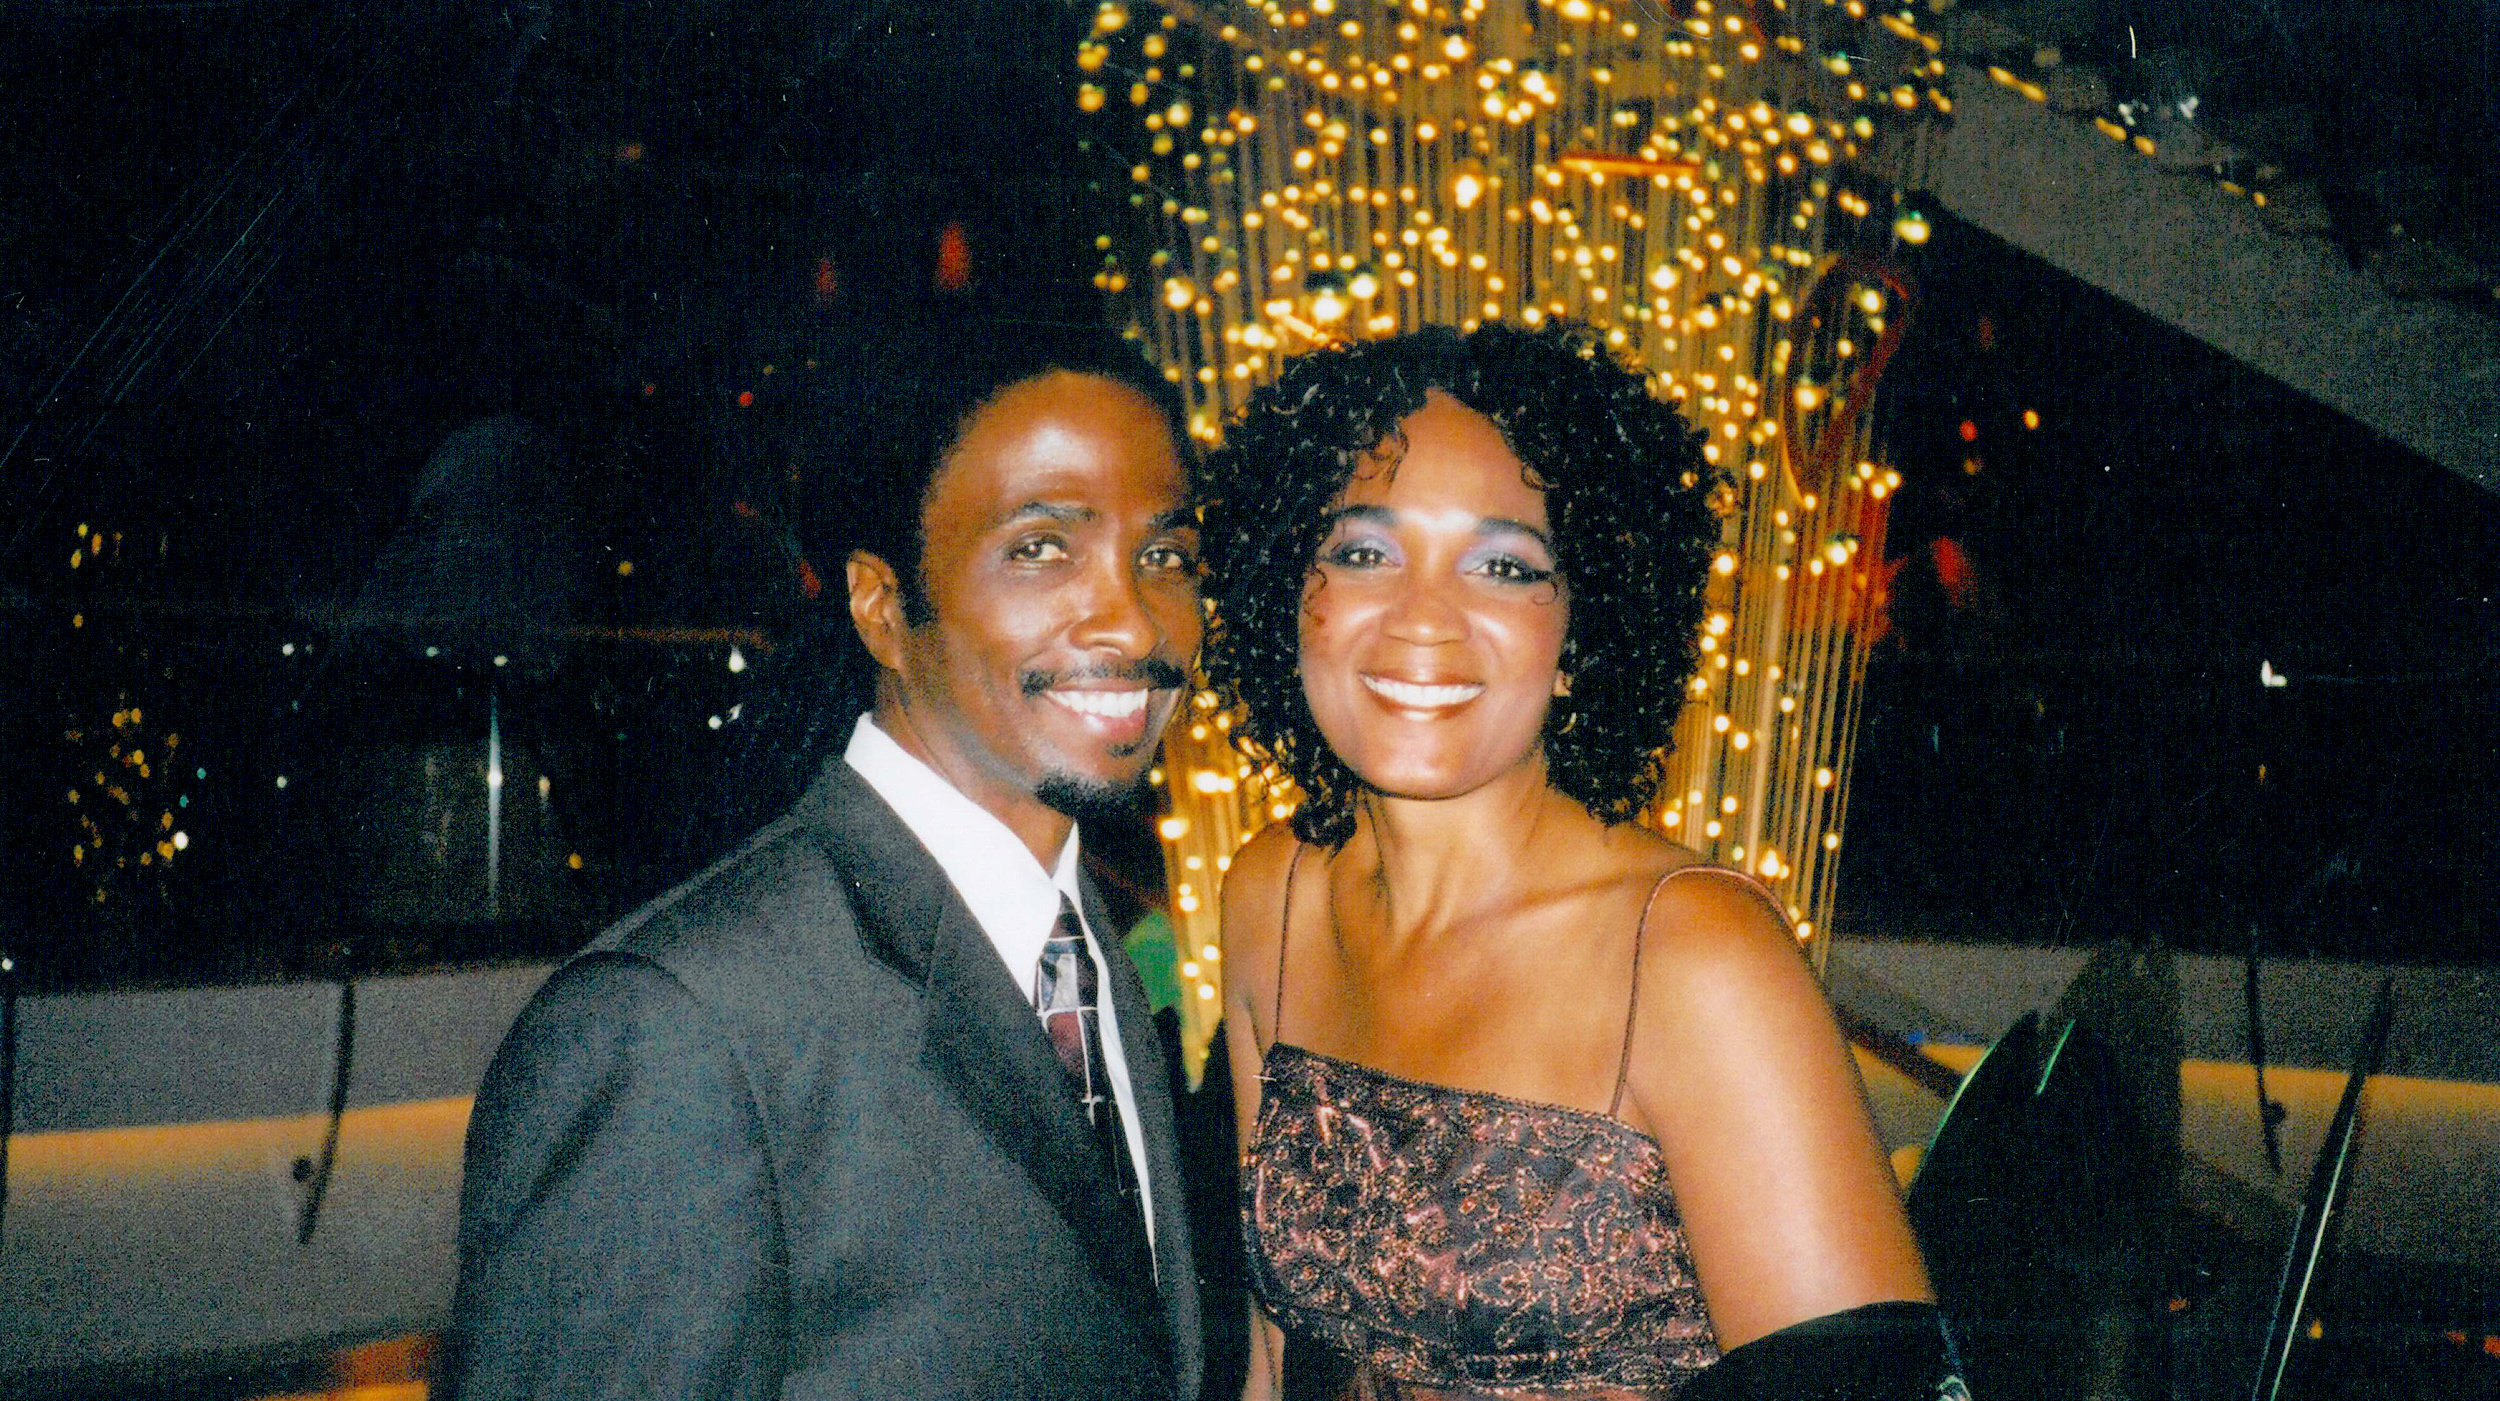 Butch & Brenda Stewart (Founders)  first met in 1969 at Thornton High-school in Harvey, IL where Brenda joined Butch in his garage band as a lead vocalist. They grew up playing in different bands and singing in an array of vocal groups. The couple fell in love and 12 years later they got married.  After 20+ years of success in the jingle business, and 2 years of marriage, Butch and Brenda decided to start a family. Son's Leslie and Brandon were born as heirs to The  'Good Stewart'  Legacy which they carry on today.  Together, the family has achieved 40+ successful years of national ad campaigns , music production, and building what would become the most influential and imitated production house of our time.